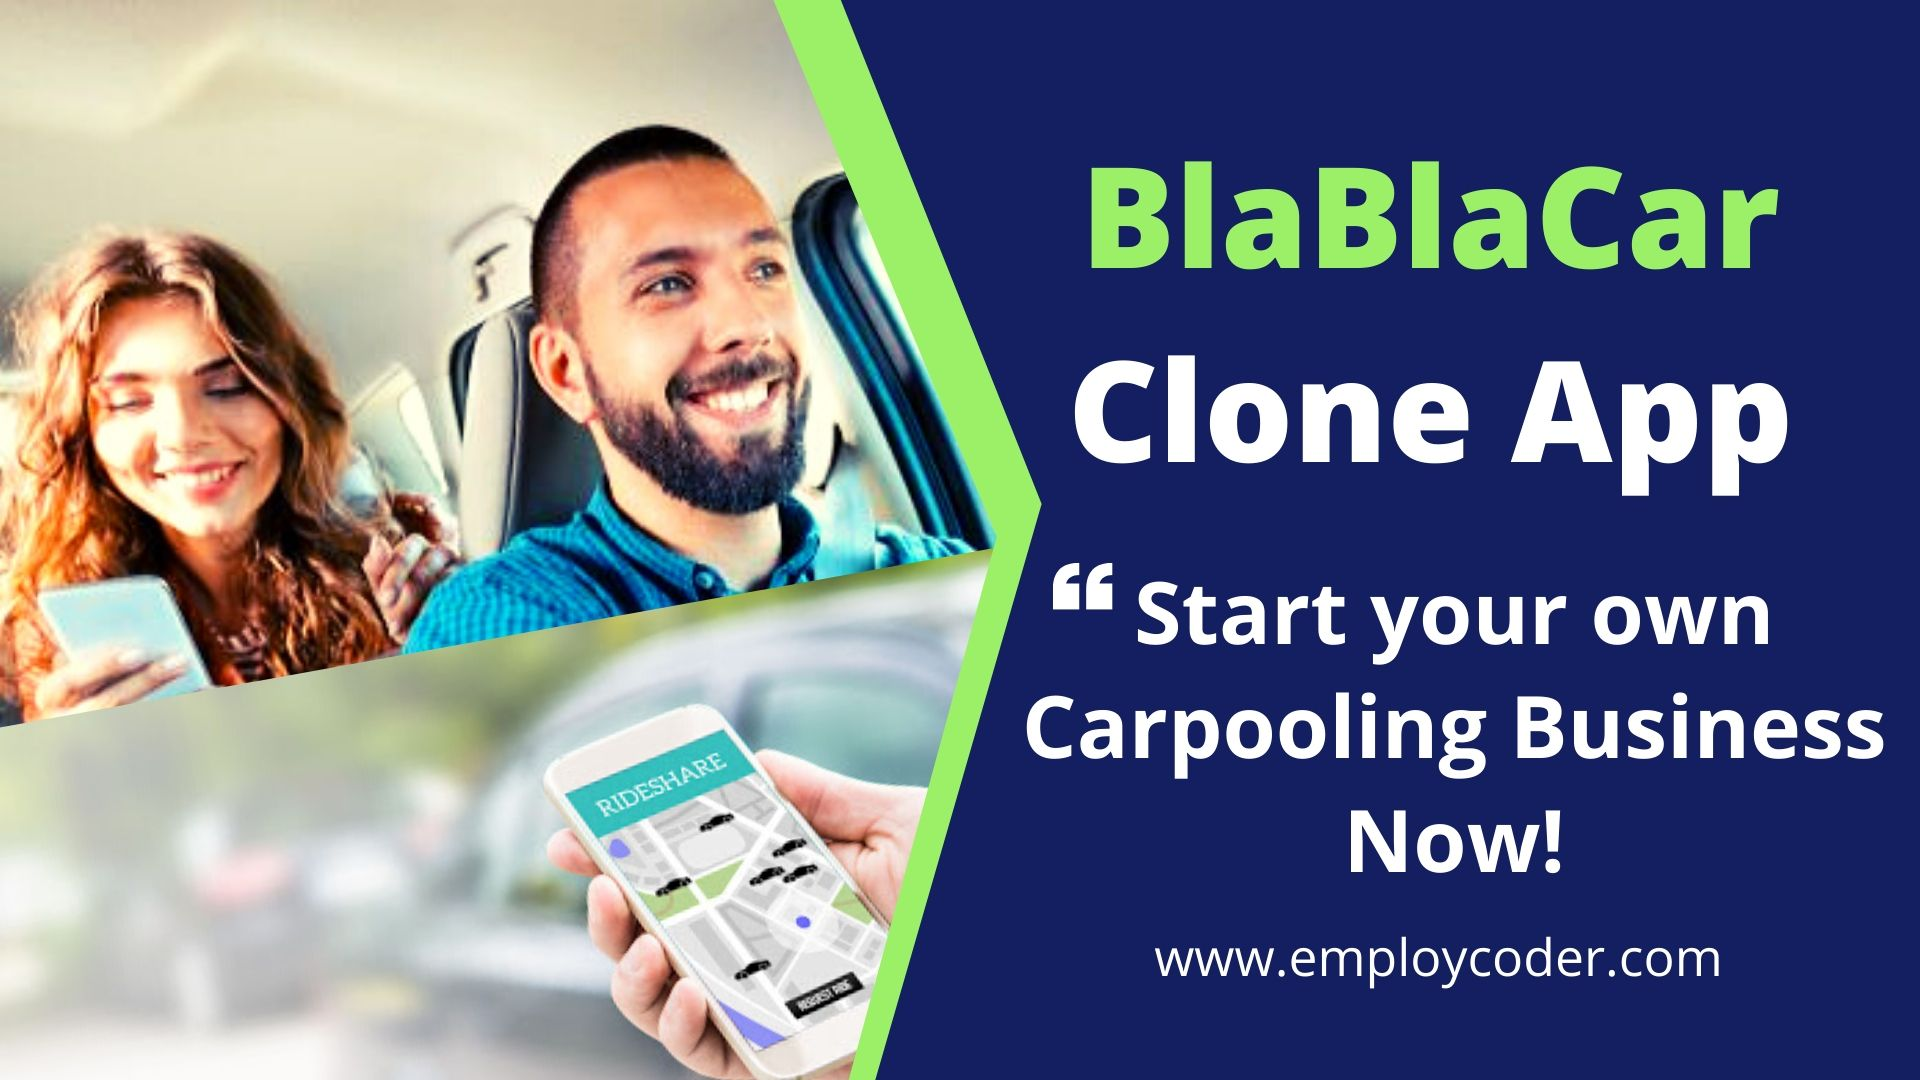 BlaBlaCar Clone App - Start a Ride Sharing App like BlaBlaCar